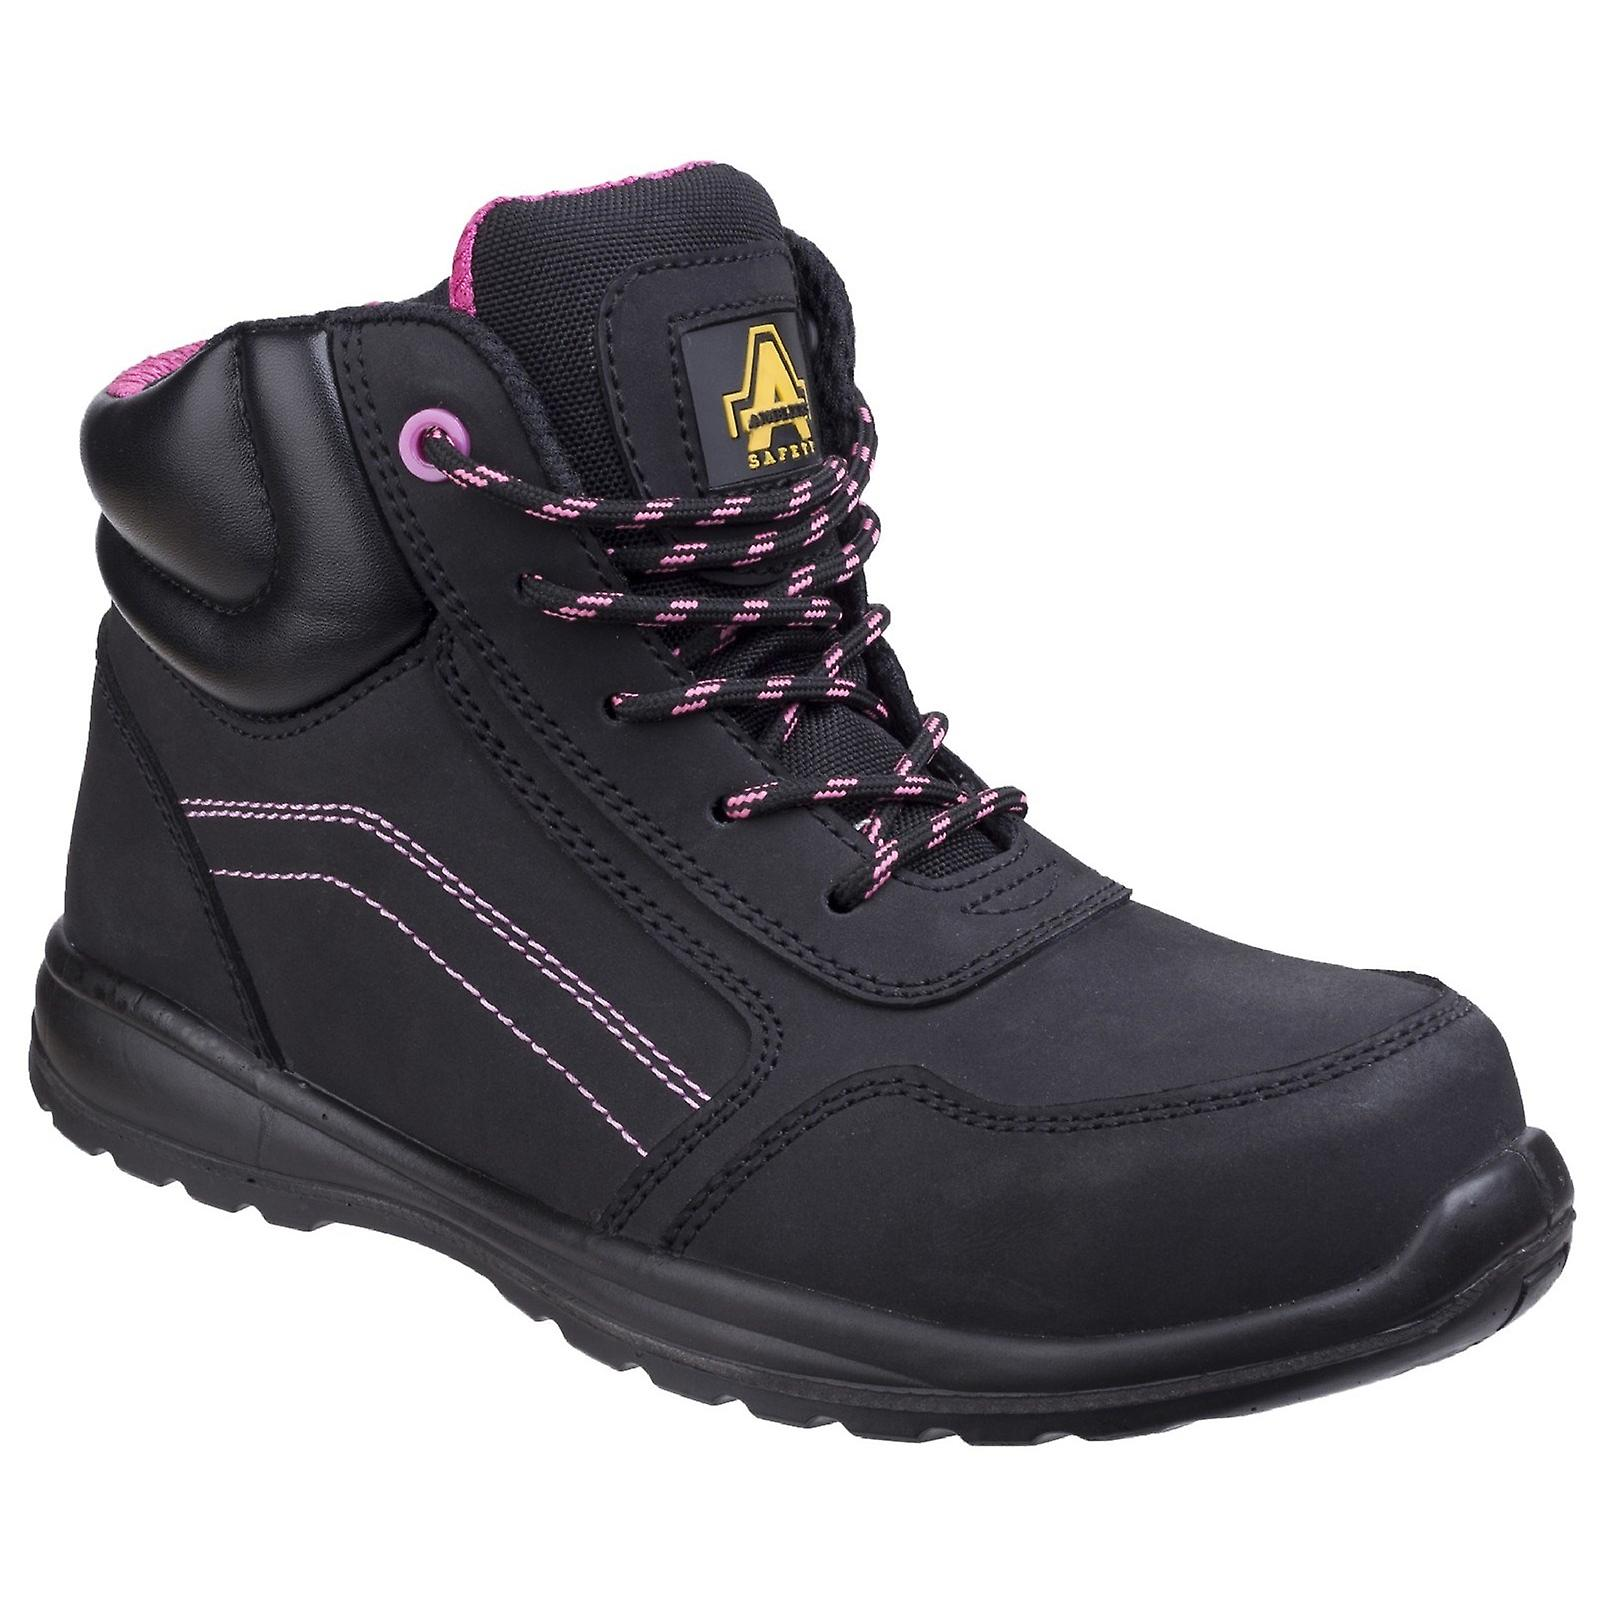 Amblers Safety Womens/Ladies Composite Safety Boots With Side Zip s0Nl0